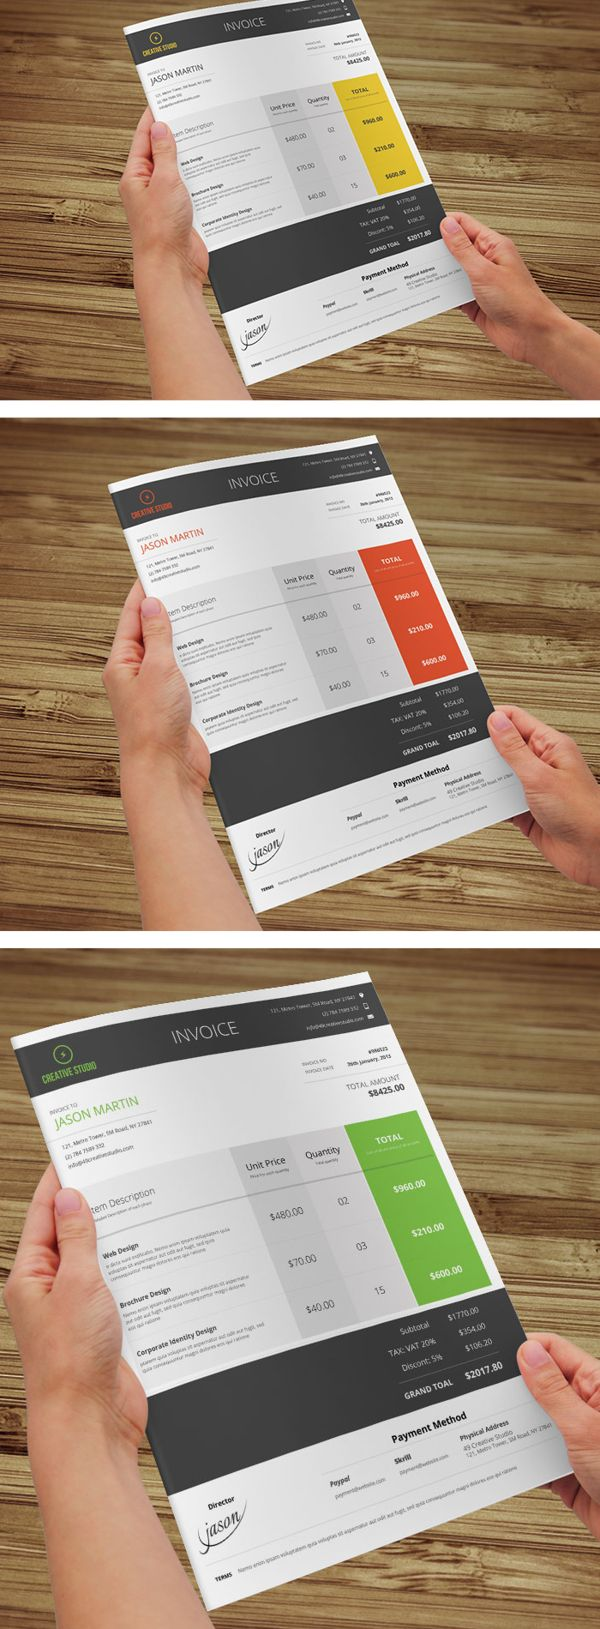 Receipt Payment Word Best  Invoice Sample Ideas On Pinterest  Invoice Example Http  Neat Receipts Customer Service Pdf with Personalized Receipts  Creative Invoice Template Designs Receipt Filing Software Word